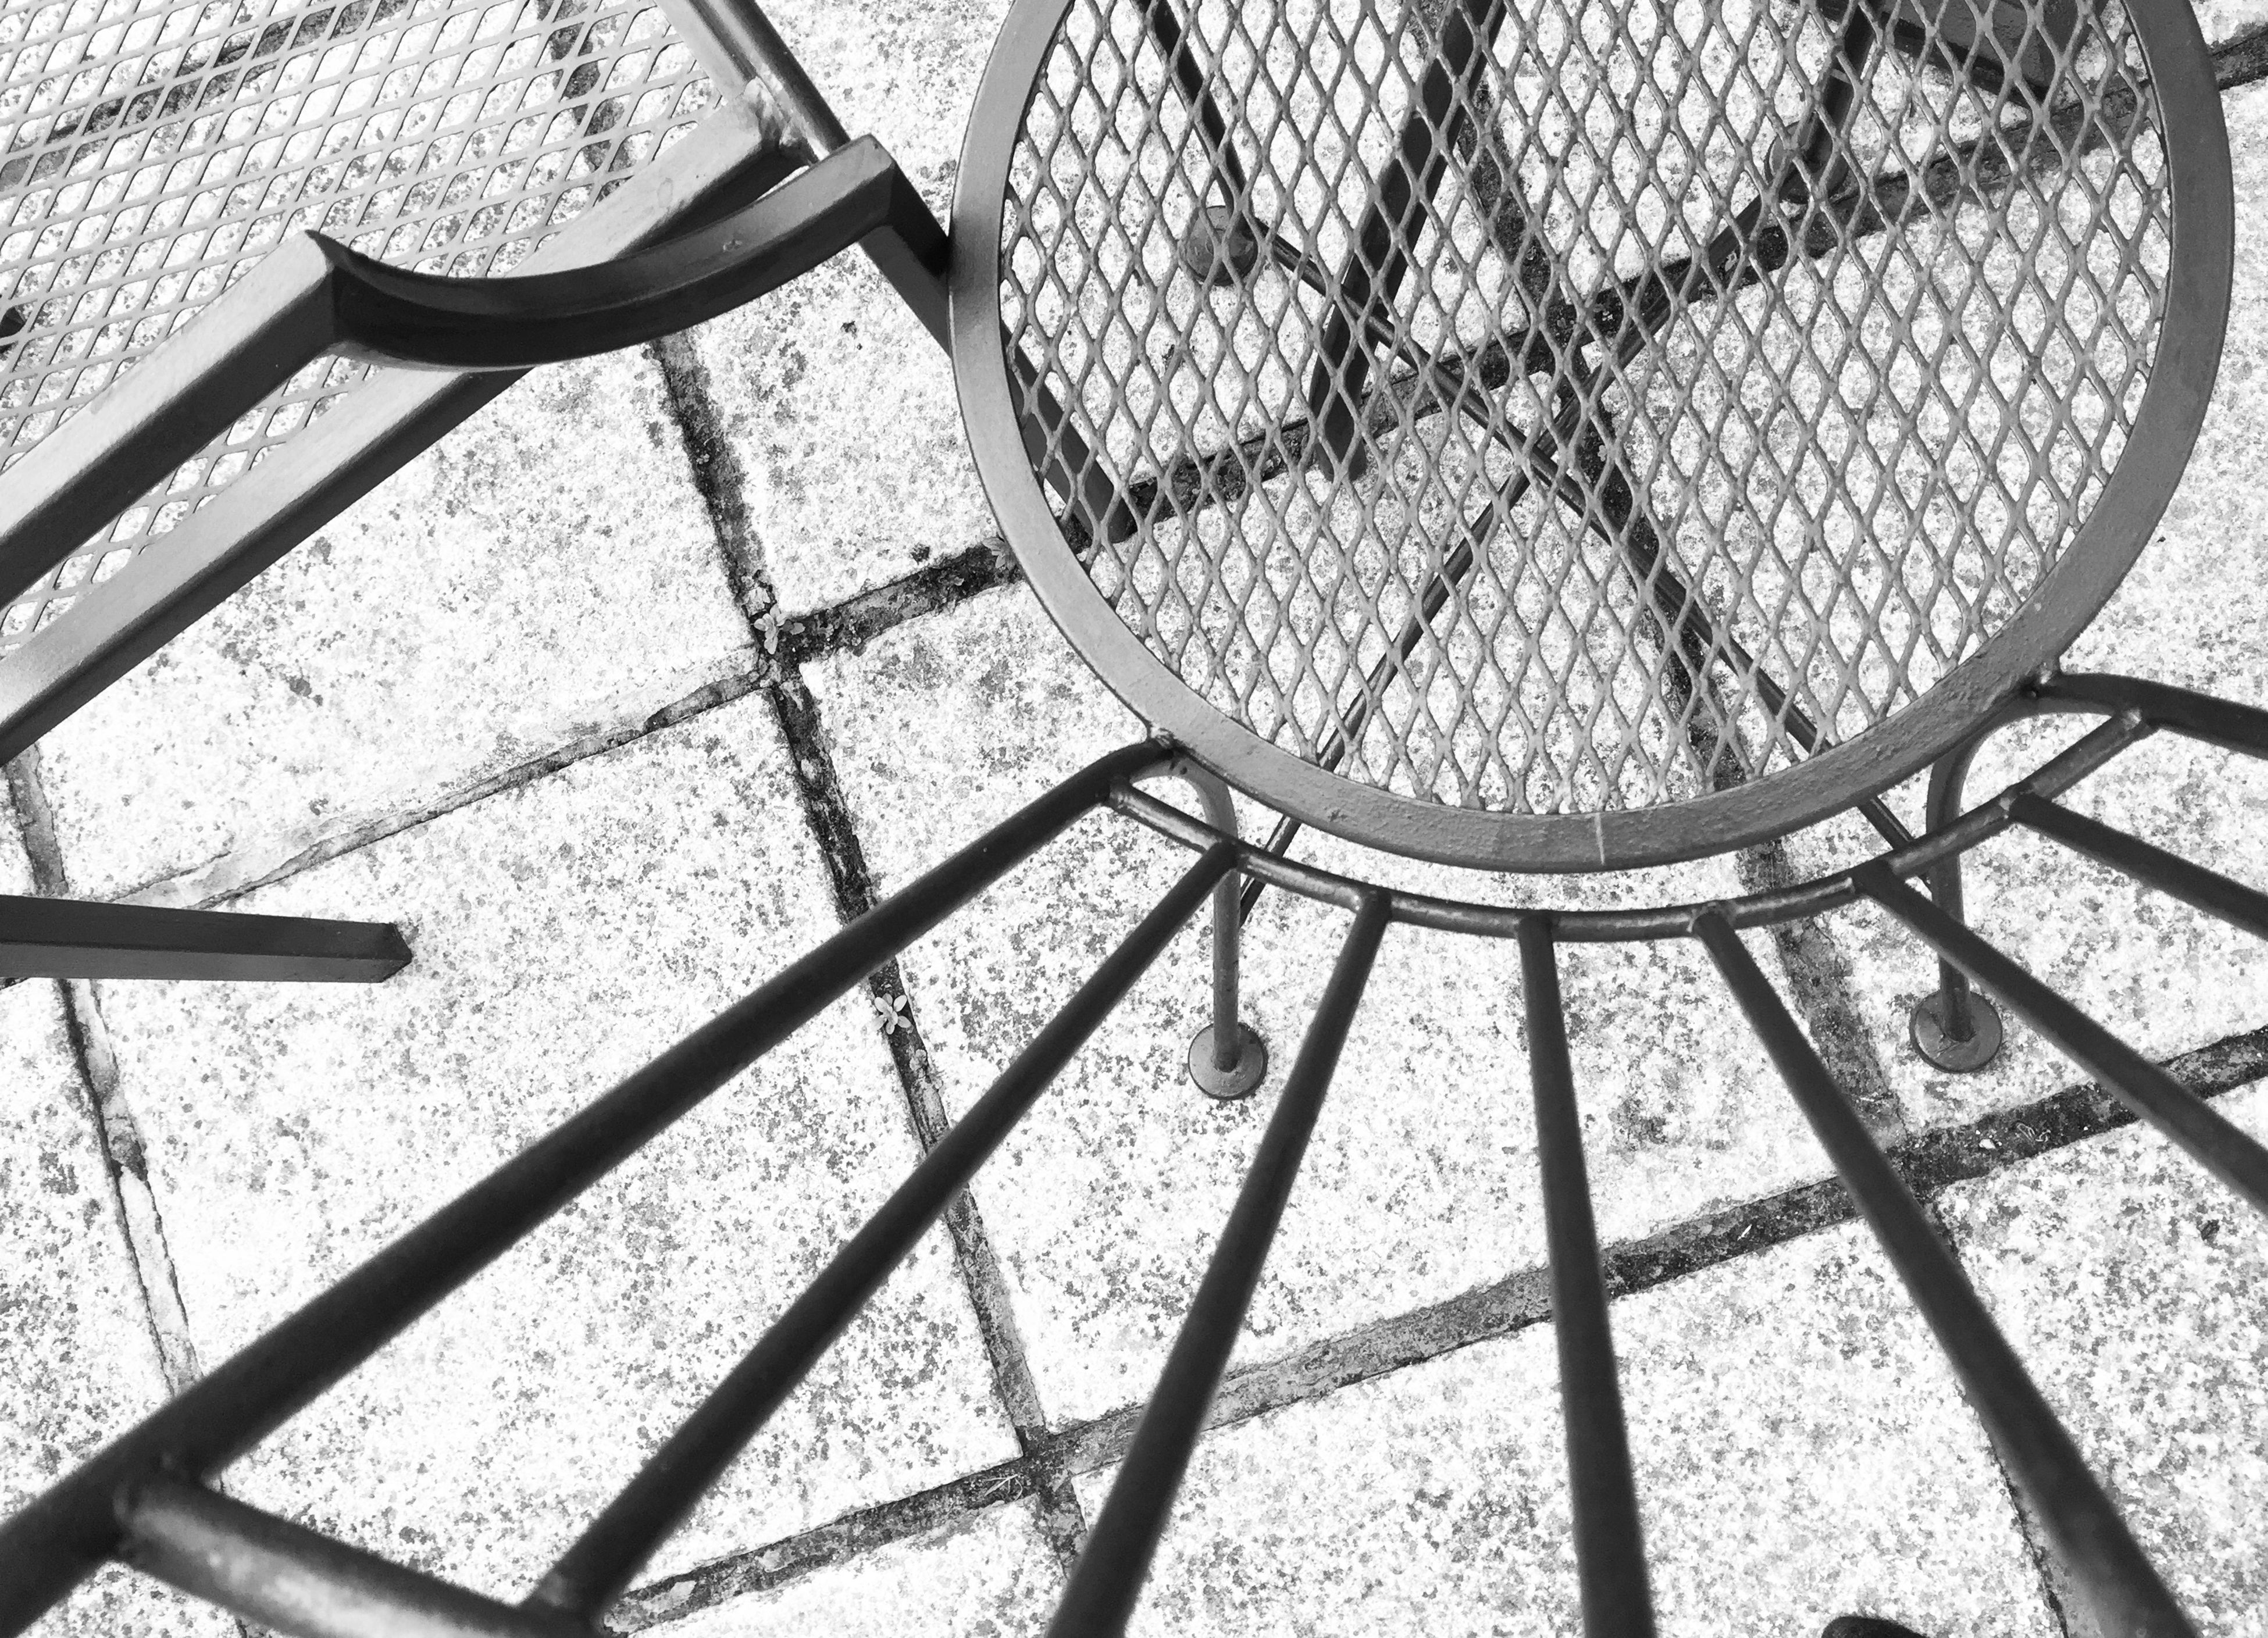 metal, pattern, shadow, indoors, design, high angle view, railing, sunlight, metallic, close-up, geometric shape, no people, day, protection, shape, circle, absence, steps, built structure